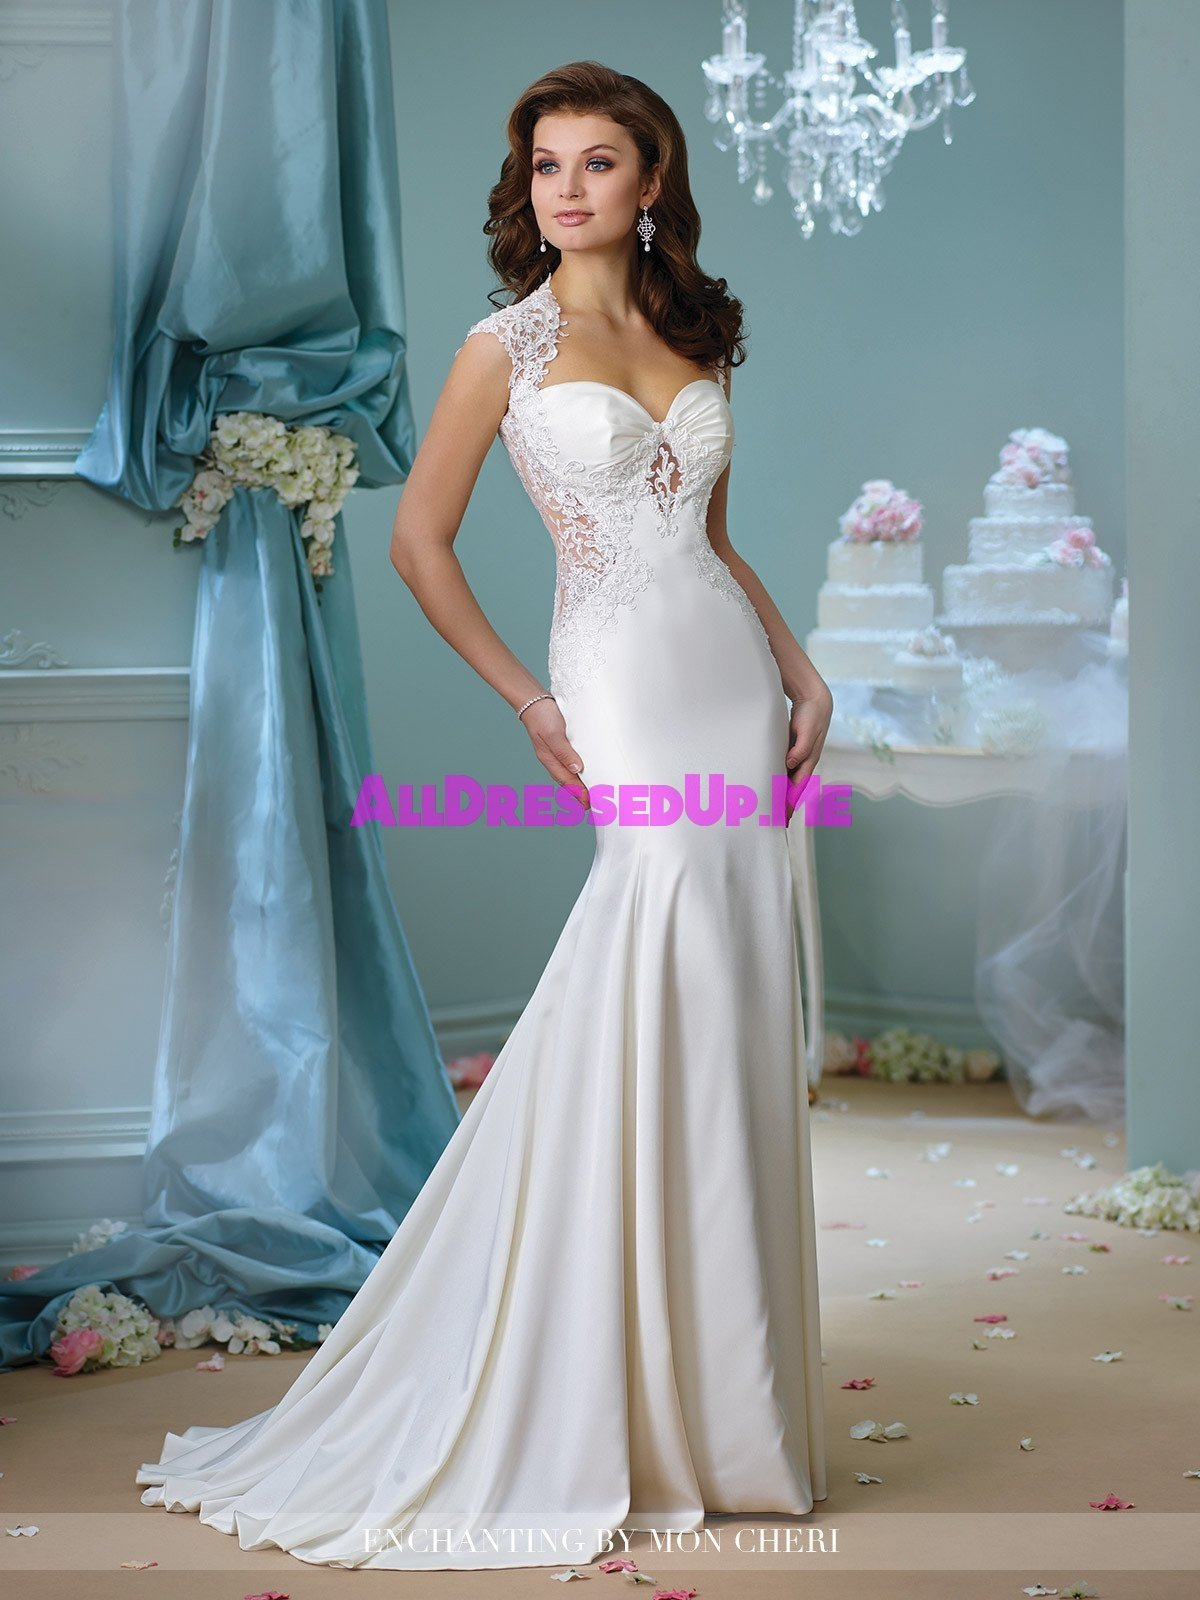 Enchanting - 216158 - All Dressed Up, Bridal Gown